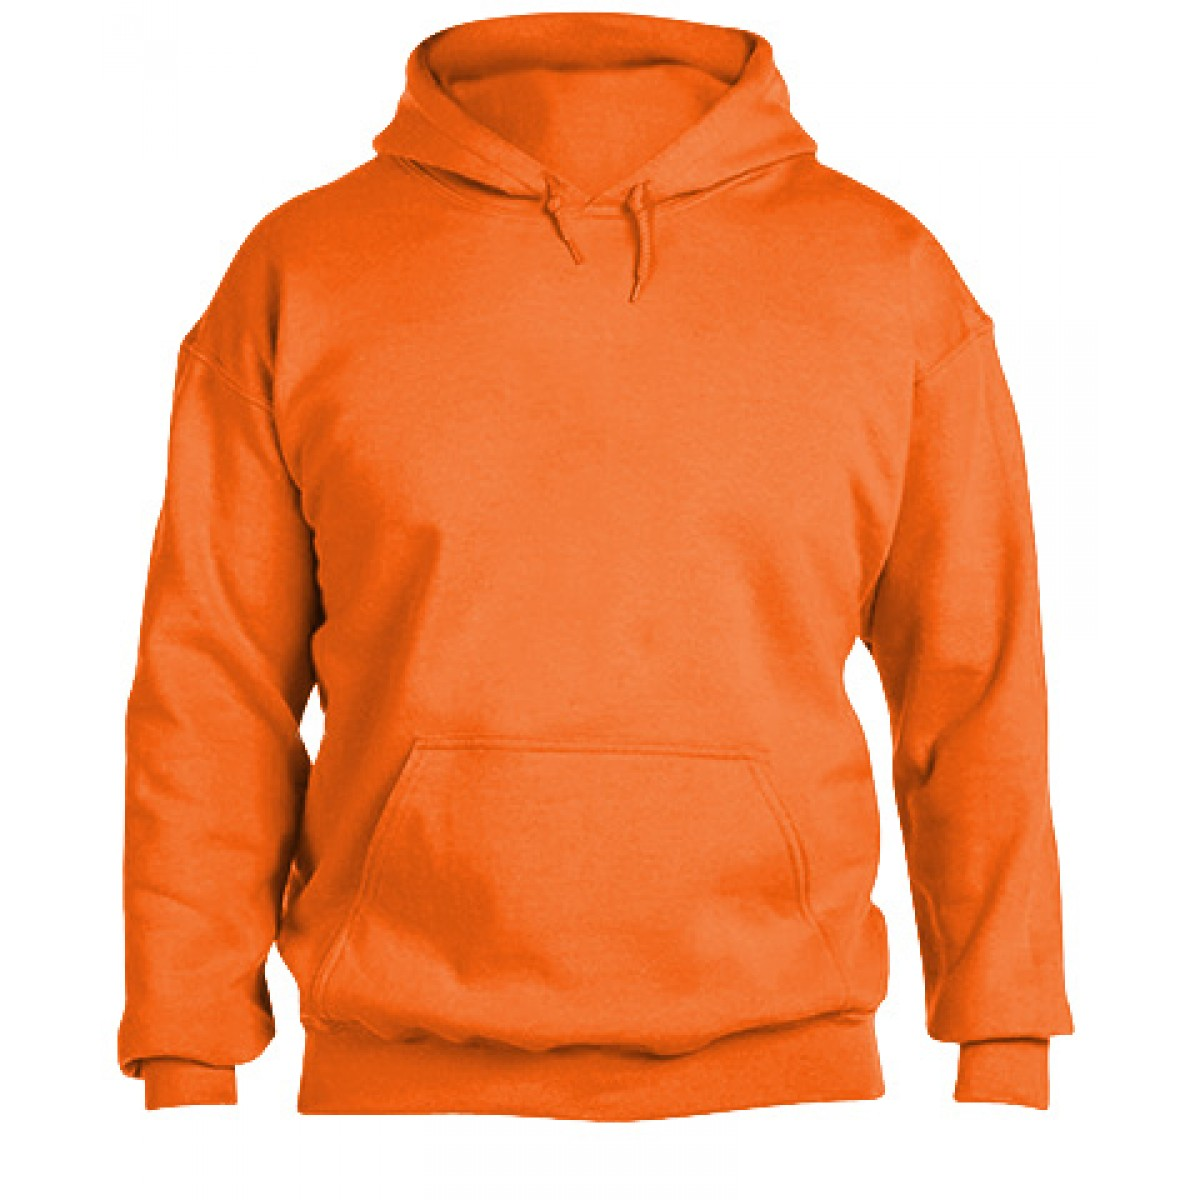 Hooded Sweatshirt 50/50 Heavy Blend -Safety Orange-S